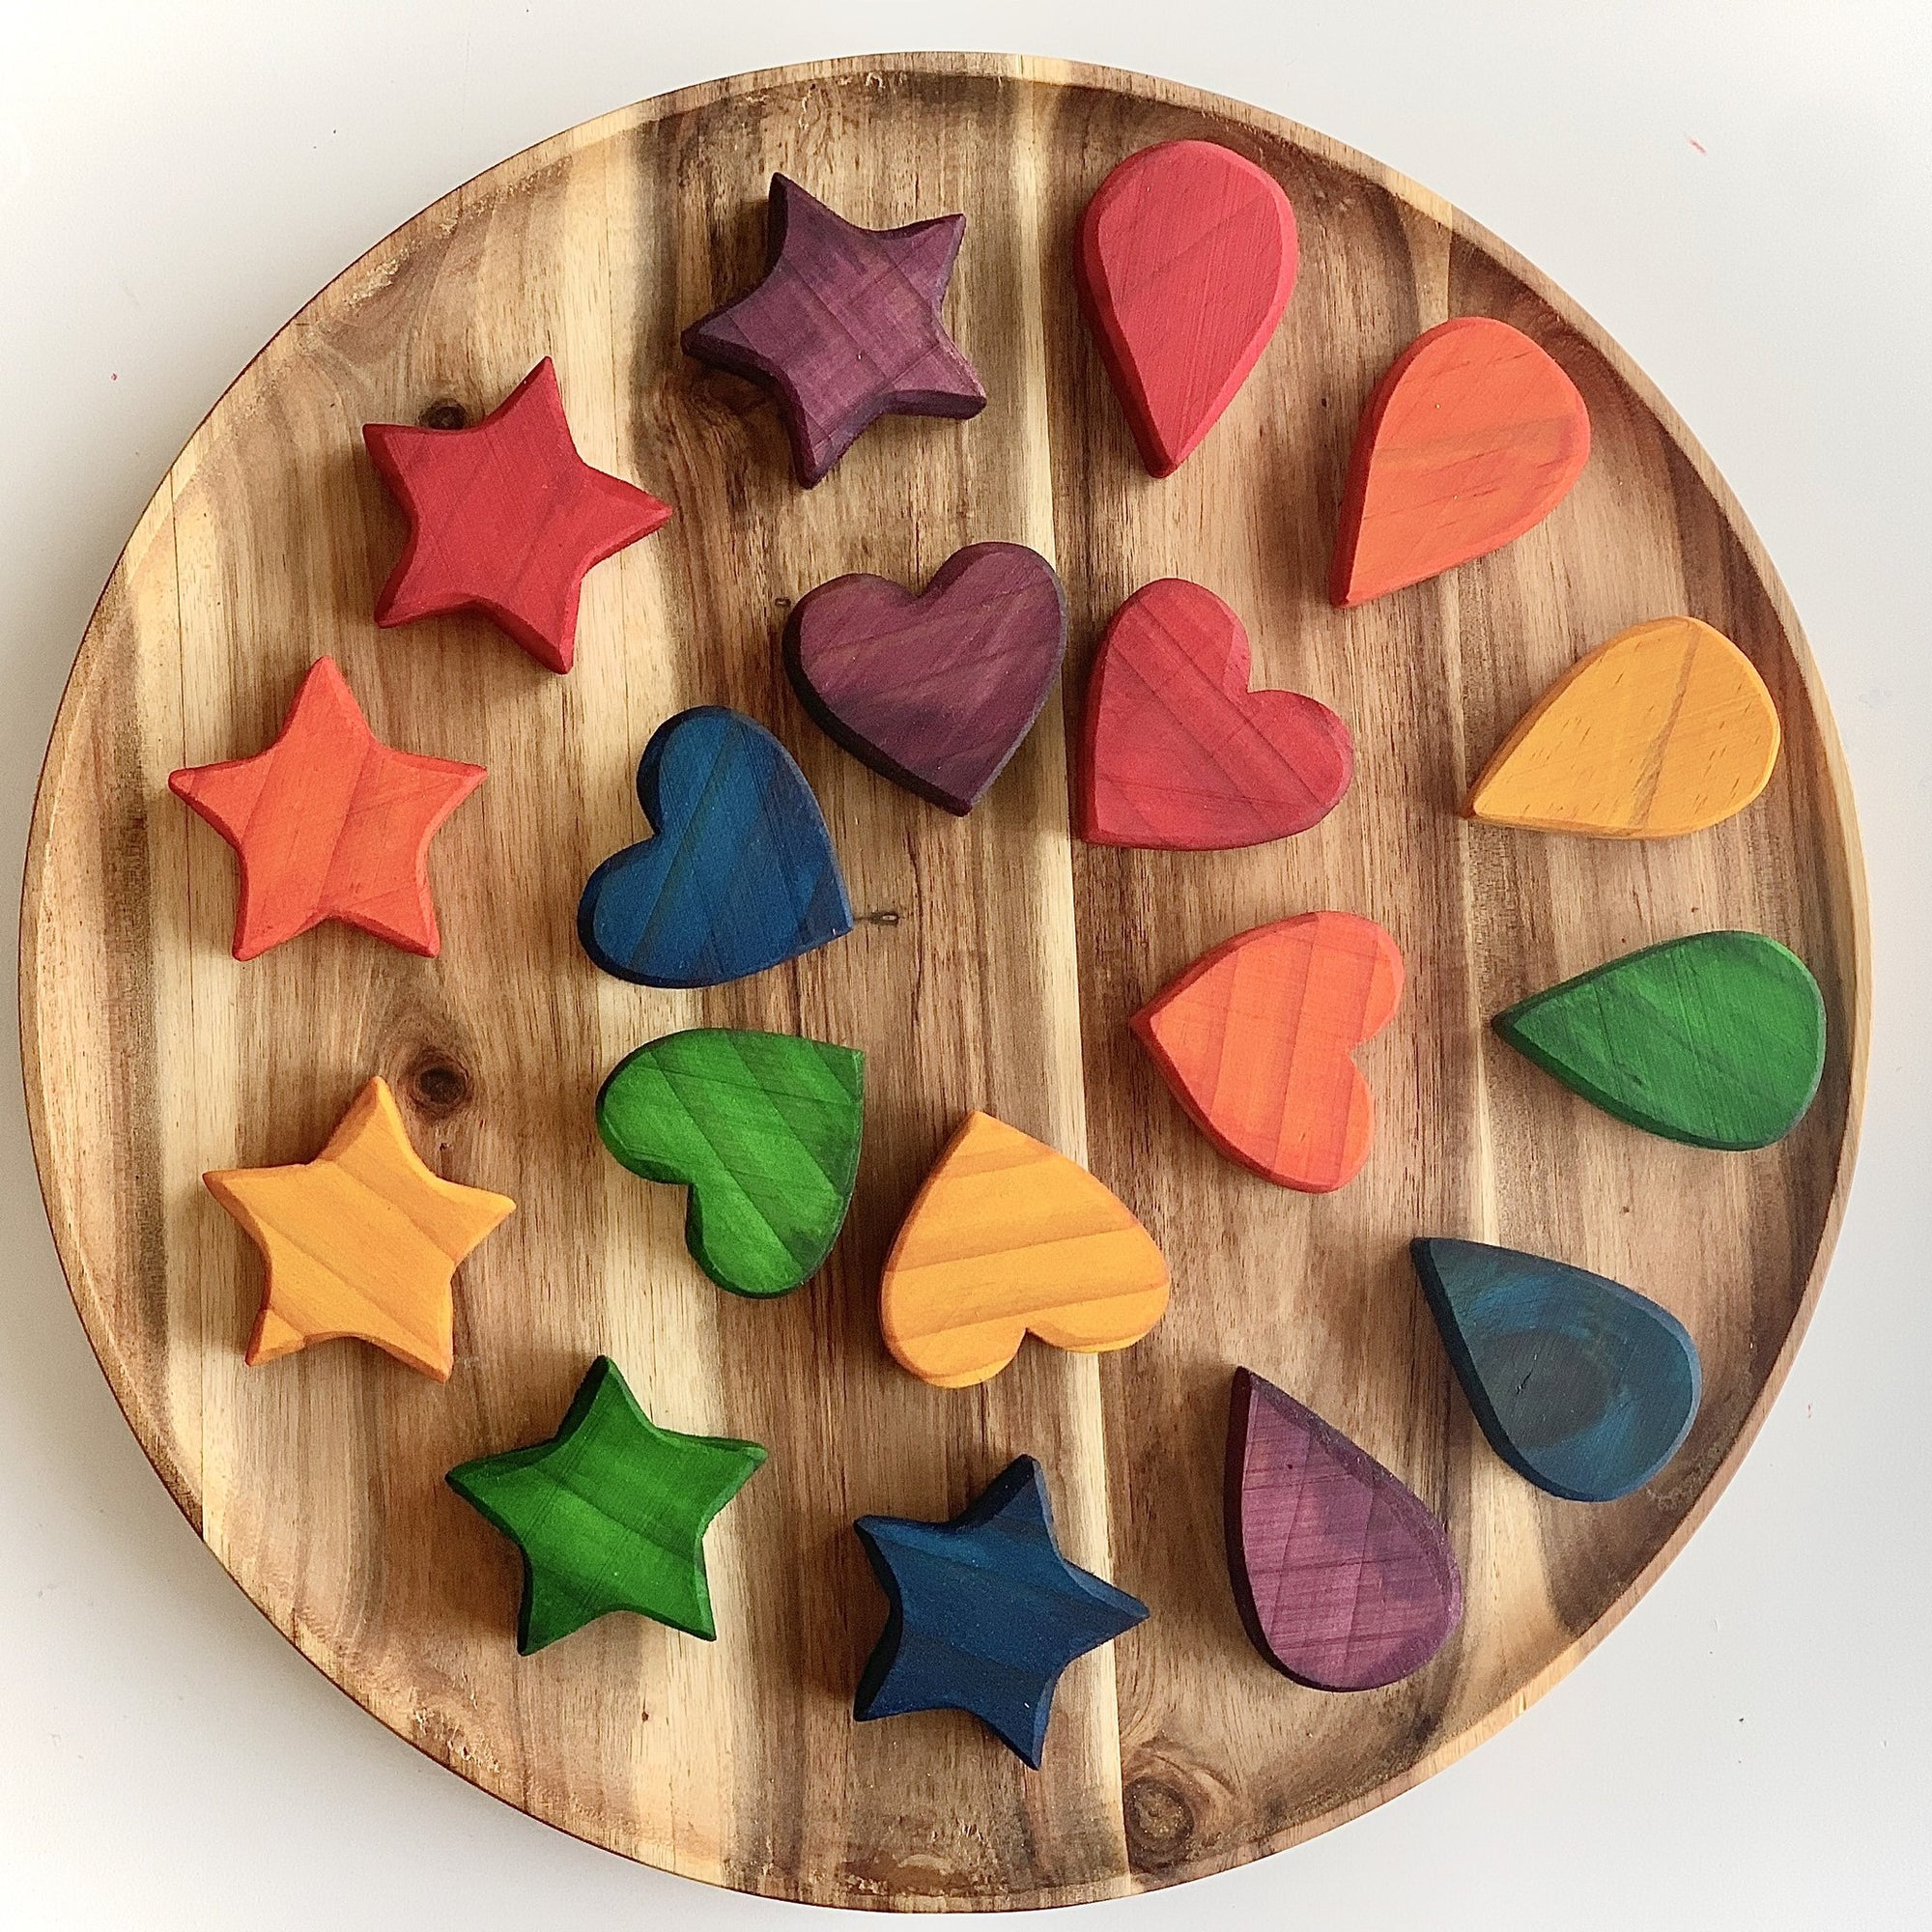 Rata and Roo 18 Wooden Rainbow Shapes